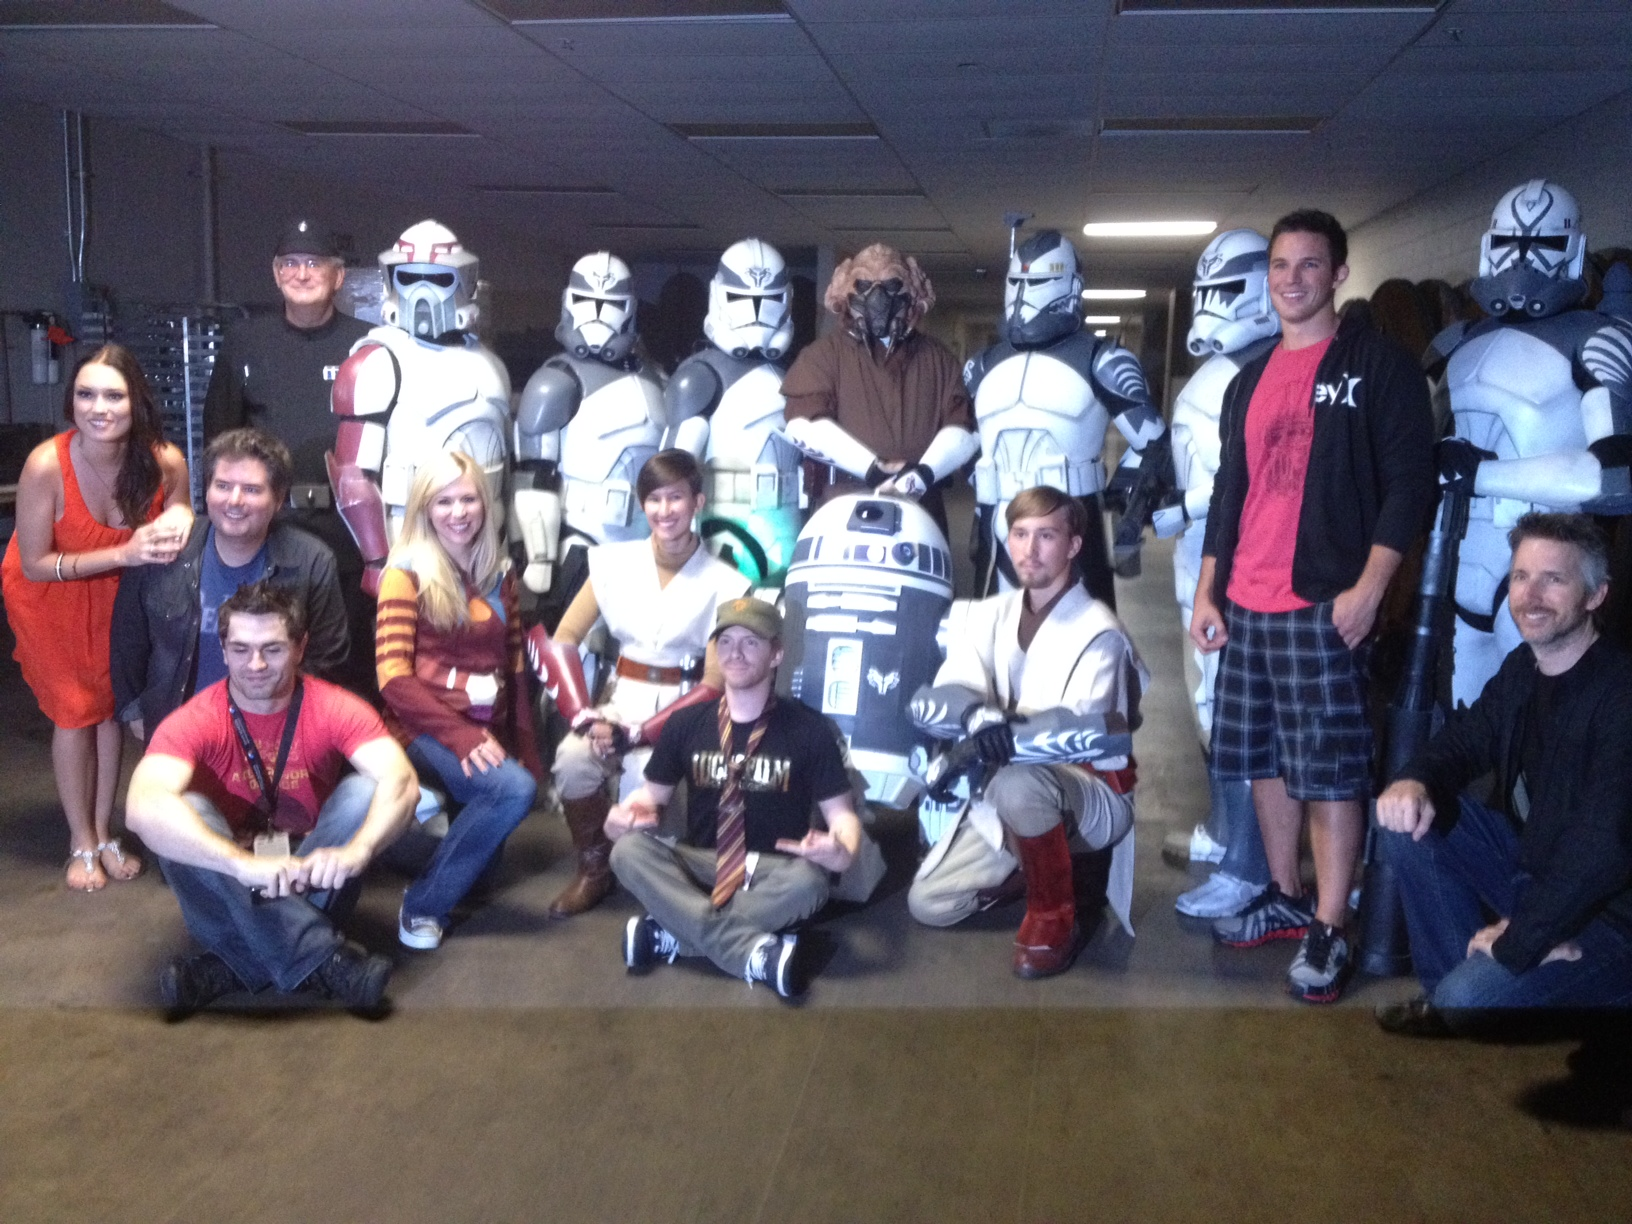 Backstage after Smuggler's Gambit, we ran into the Wolfpack. It was an amazing moment at the most unlikely of locations!